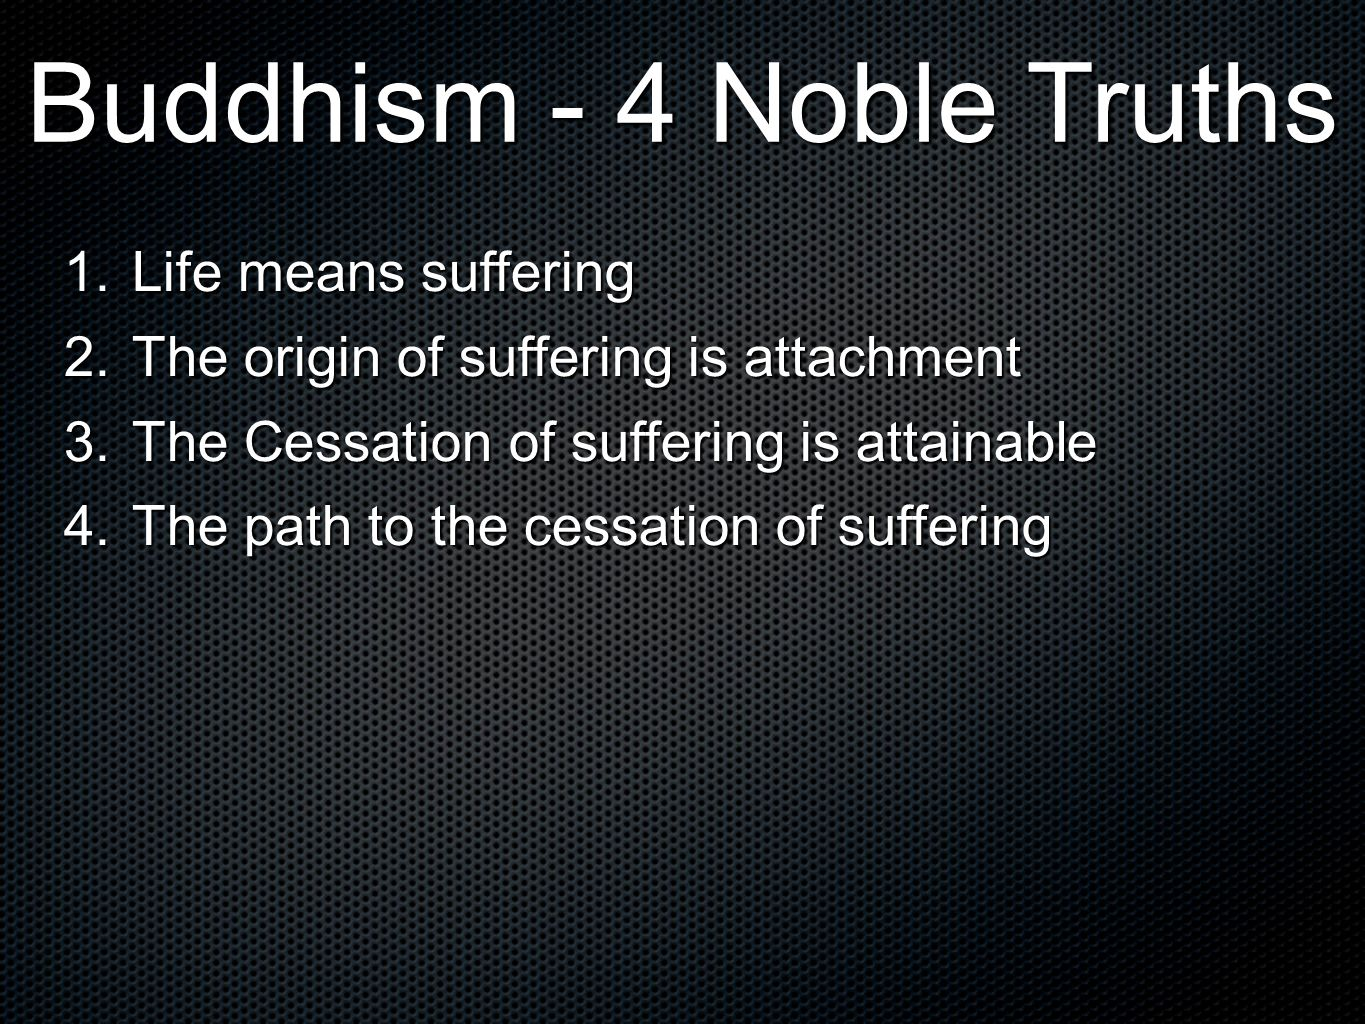 Buddhism - 4 Noble Truths